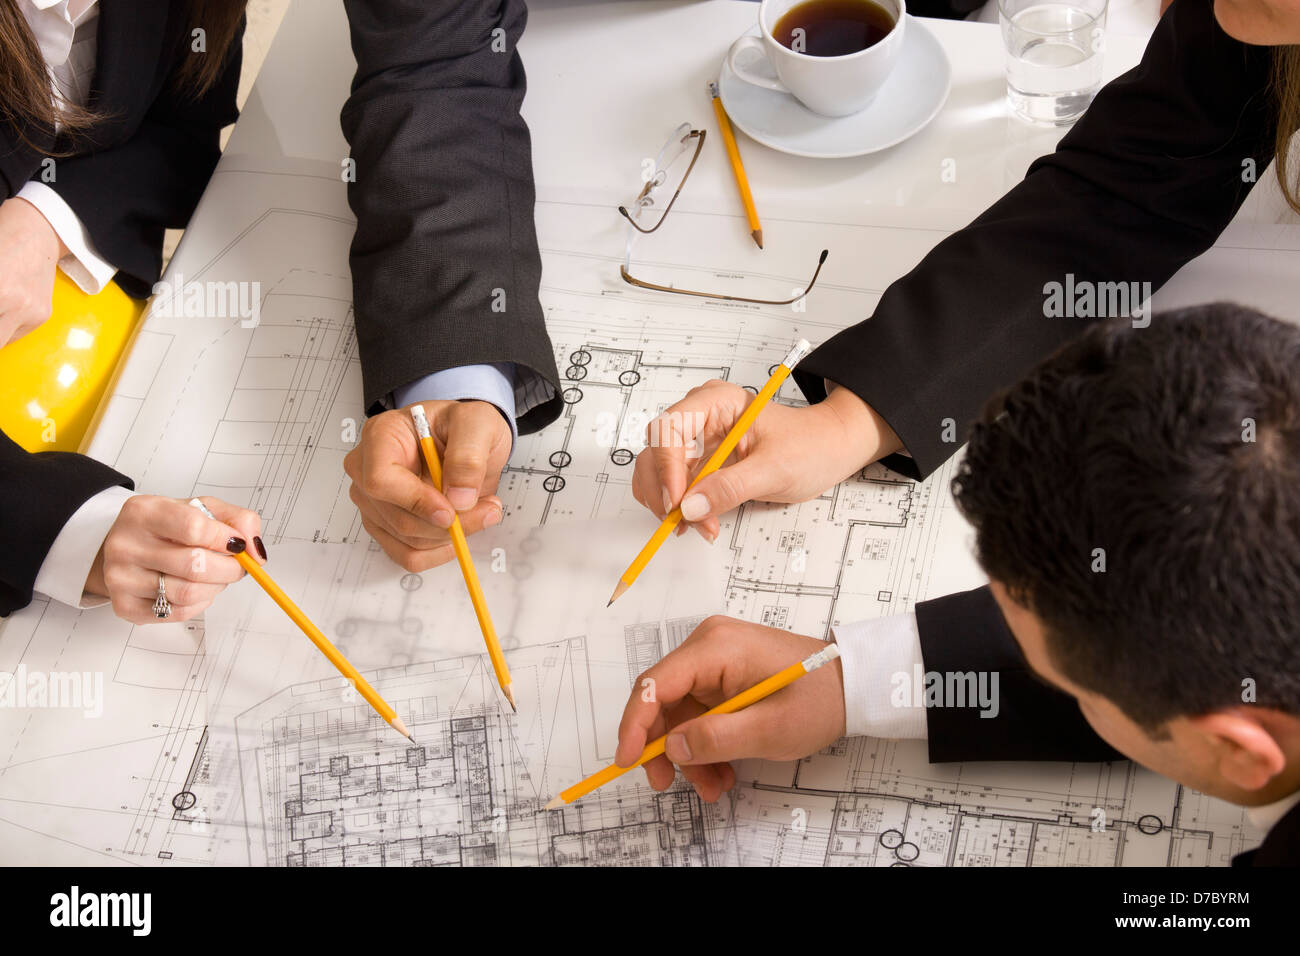 Businesspeople working together at meeting, discussing document - Stock Image